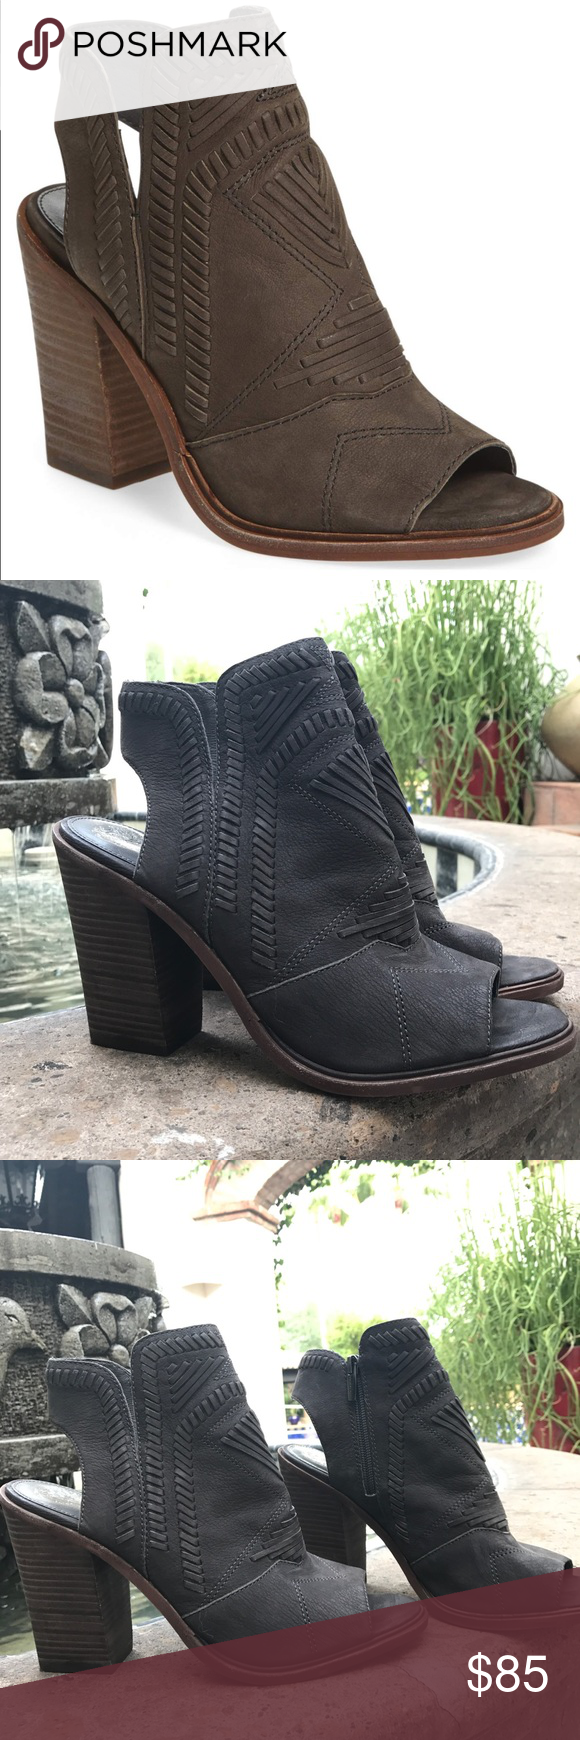 6a471b24b65 VINCE CAMUTO KARINTA PEEP TOE BOOTIE SANDAL SZ 10 Worn a couple of times.  These